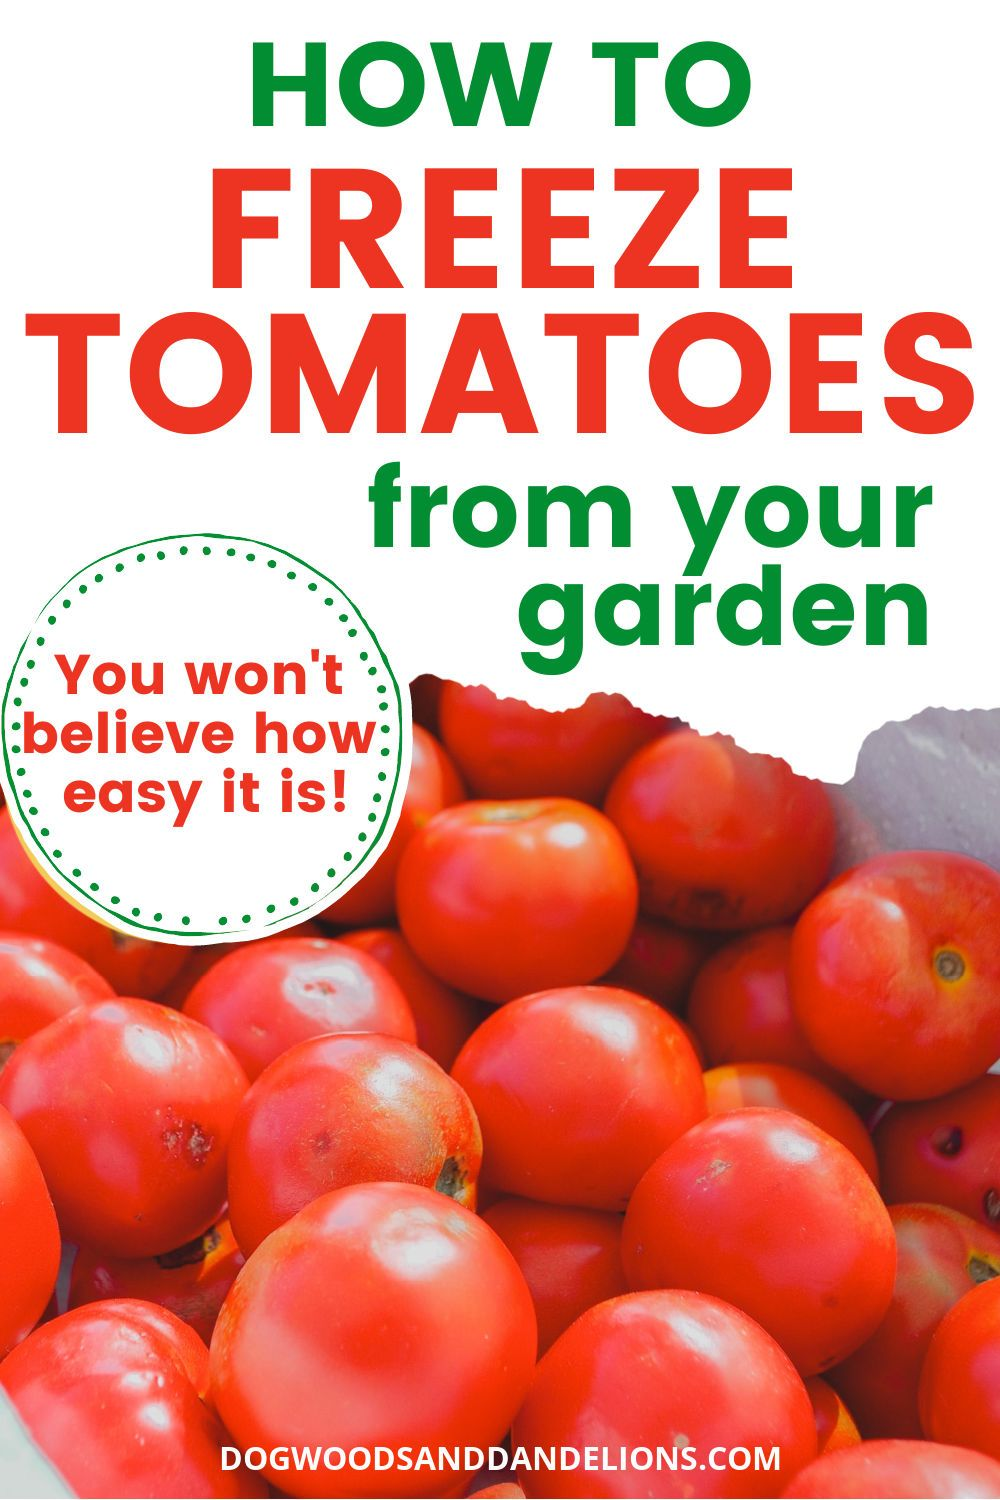 Freezing tomatoesthe simplest way to preserve tomatoes in